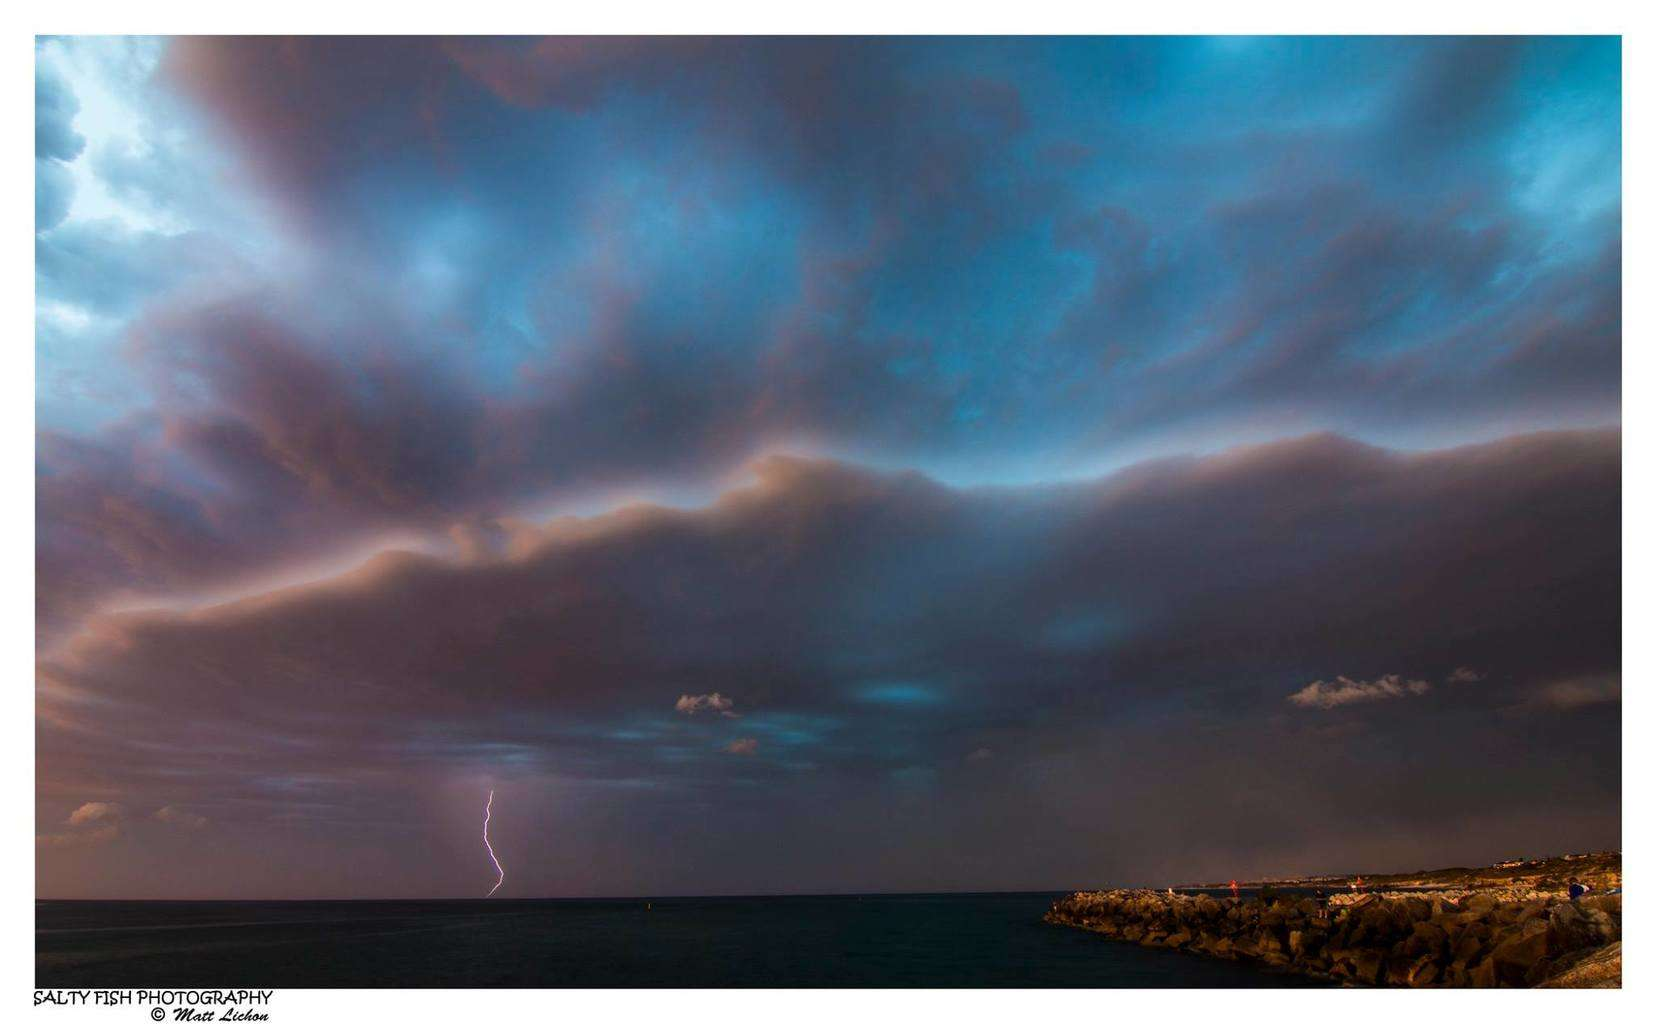 Perth as it was about to get hit by a massive cell! Adrenaline was pumping during this sunset shoot! ISO 100, f 10, 2 sec exp